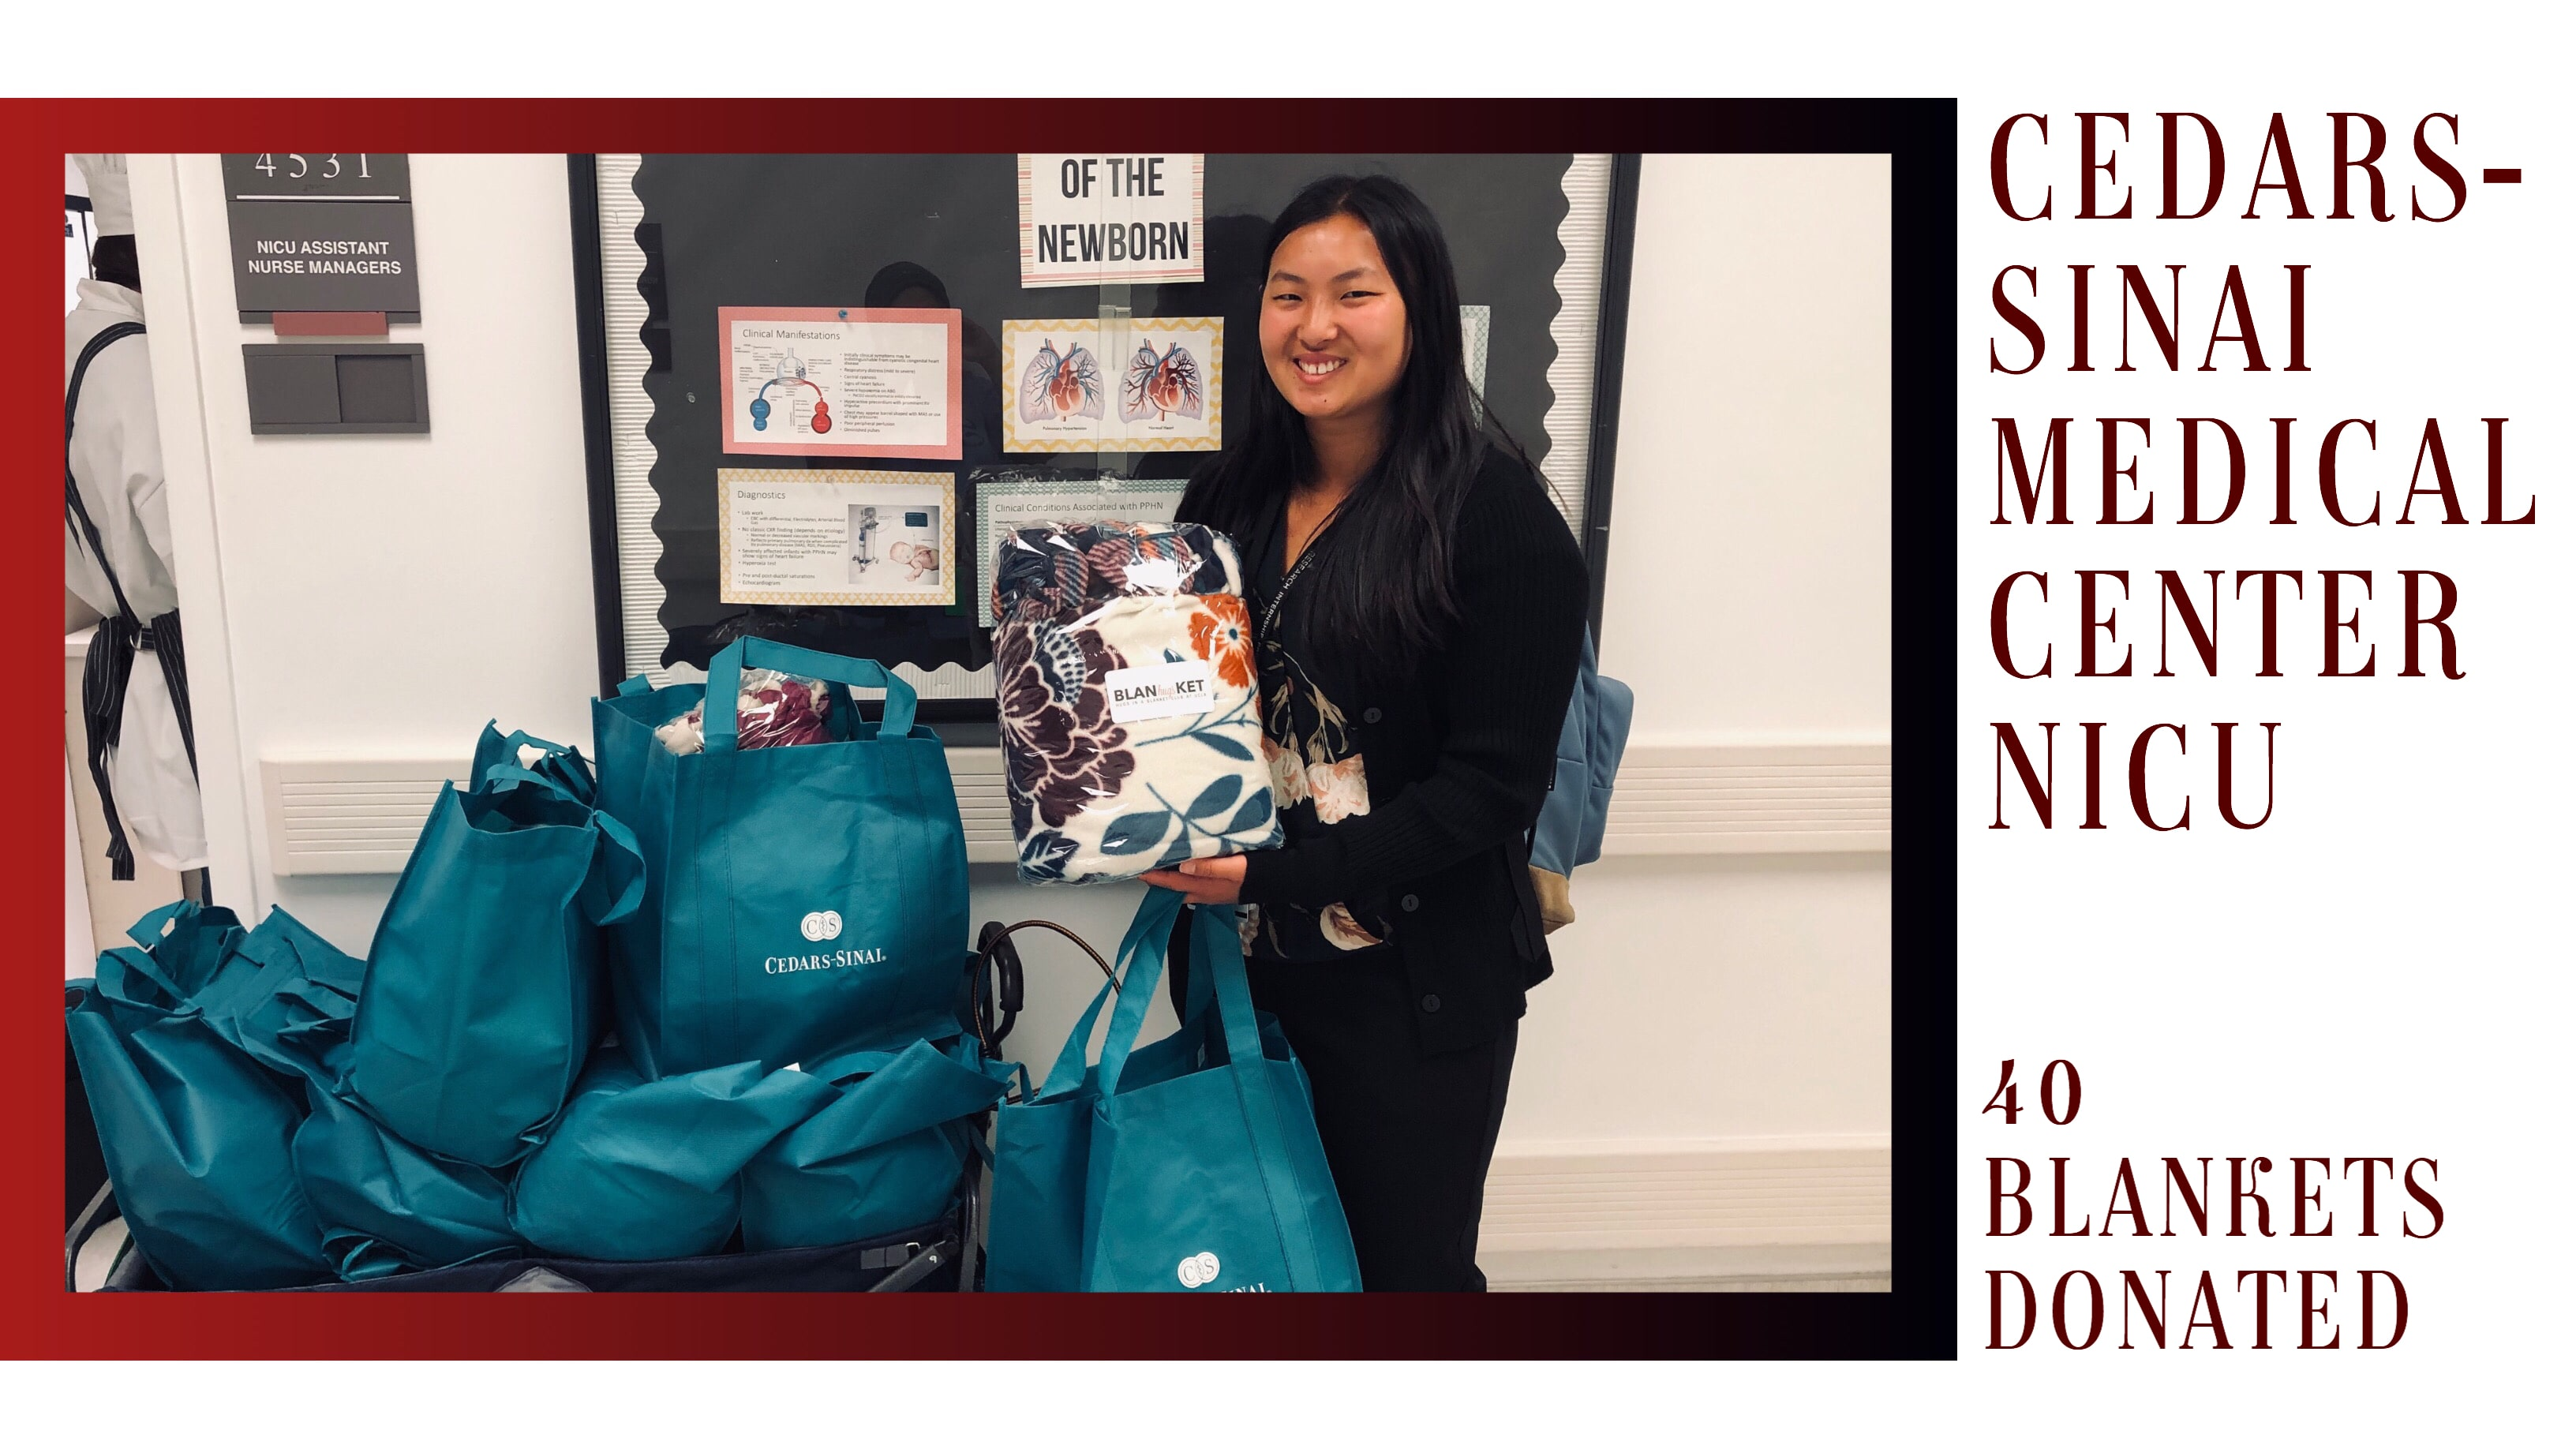 Camille Ng with the blankets which were donated to the Cedars-Sinai Medical Center NICU